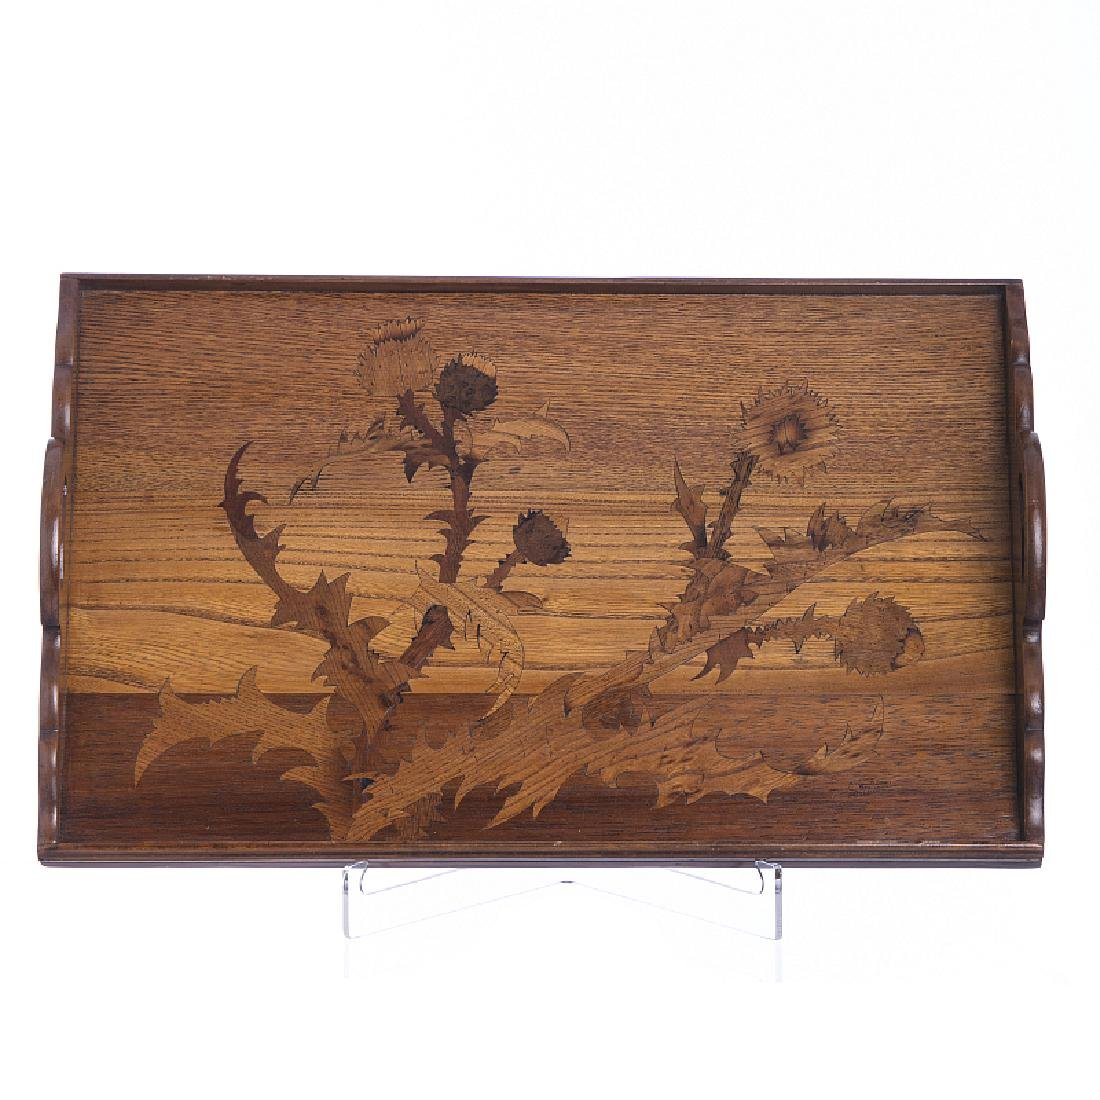 EMILE GALLE (1846-1904) - Tray